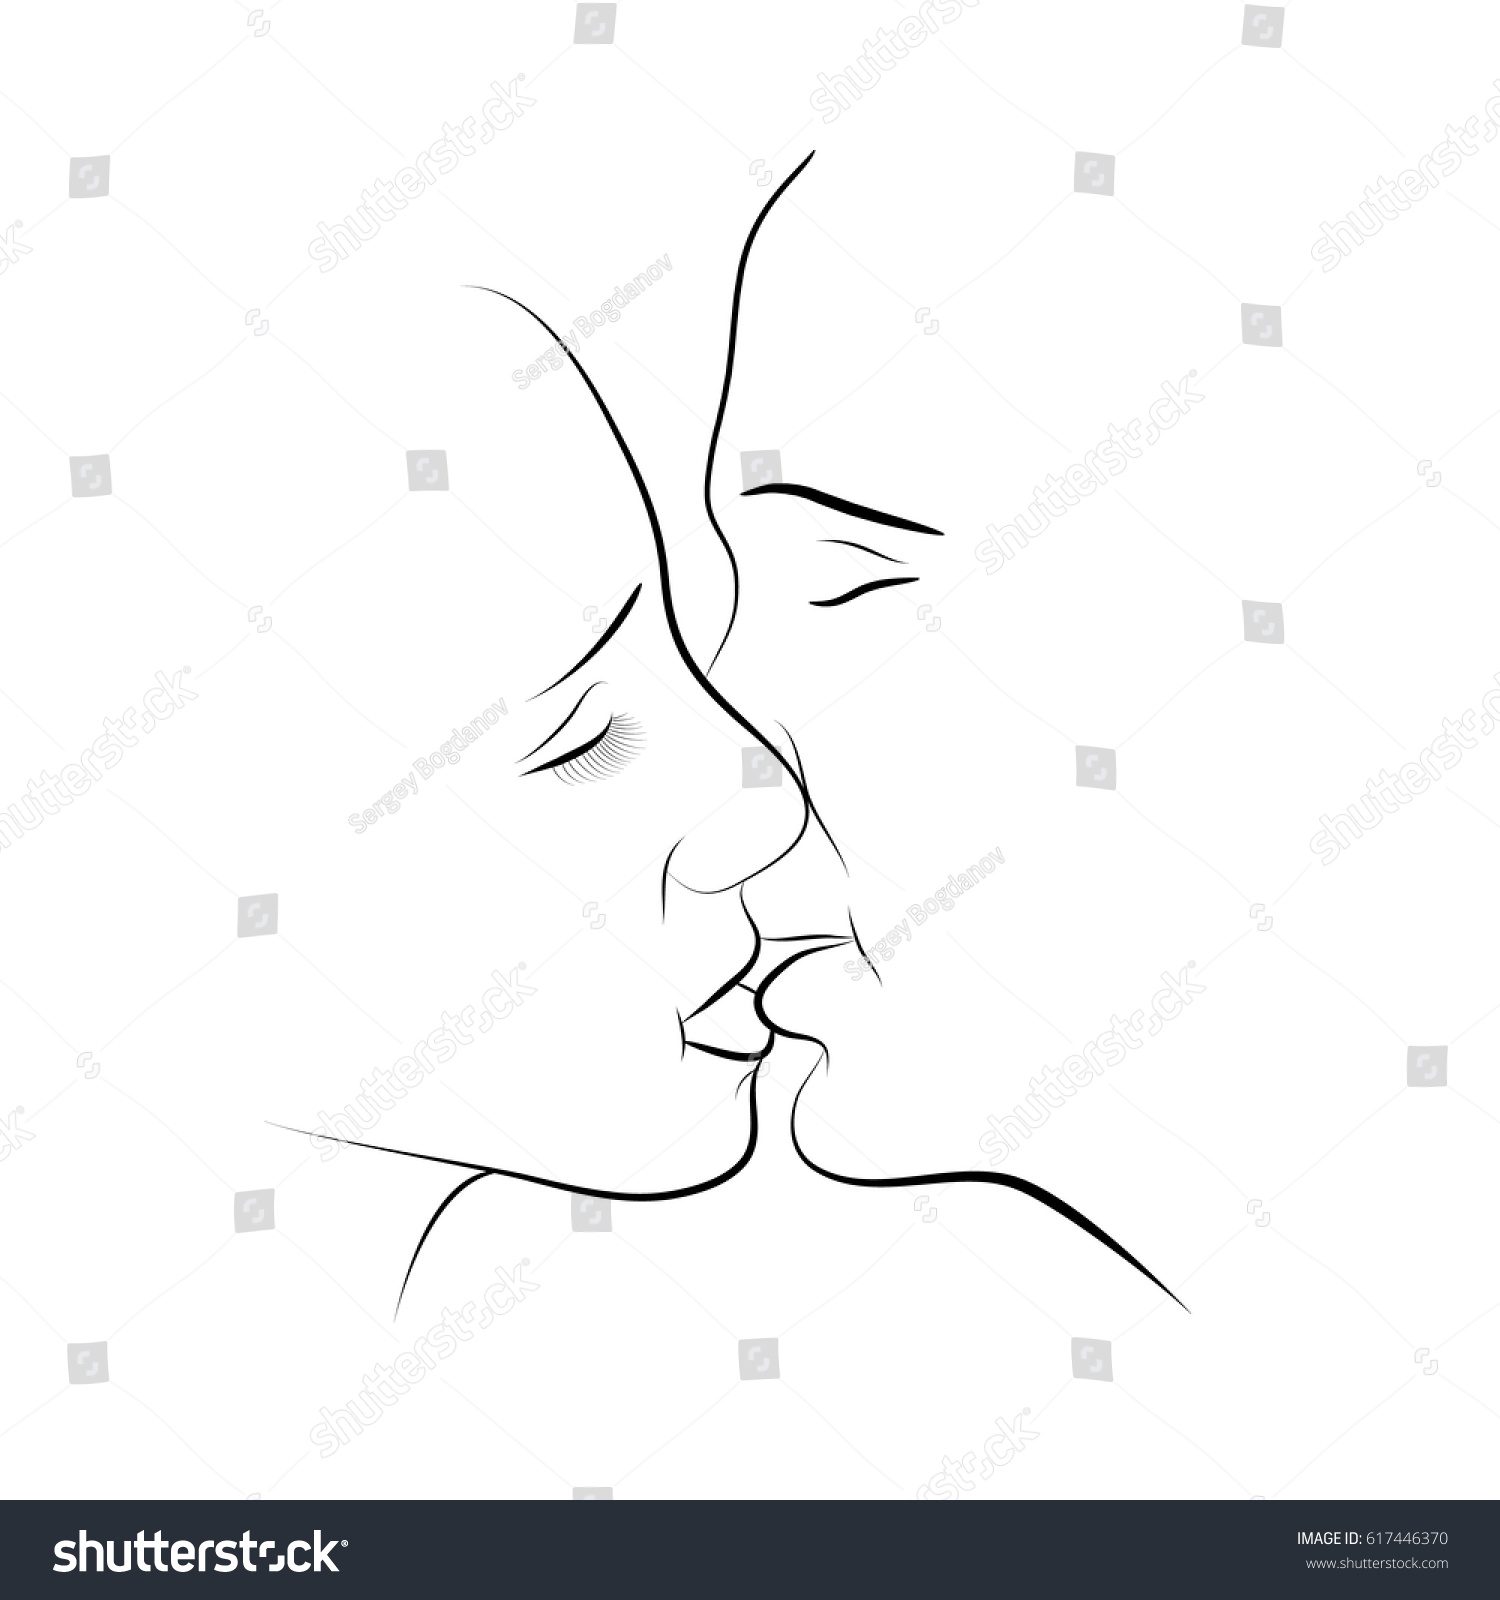 Pencil sketch of loving couple lovers kiss line drawing vector illustration